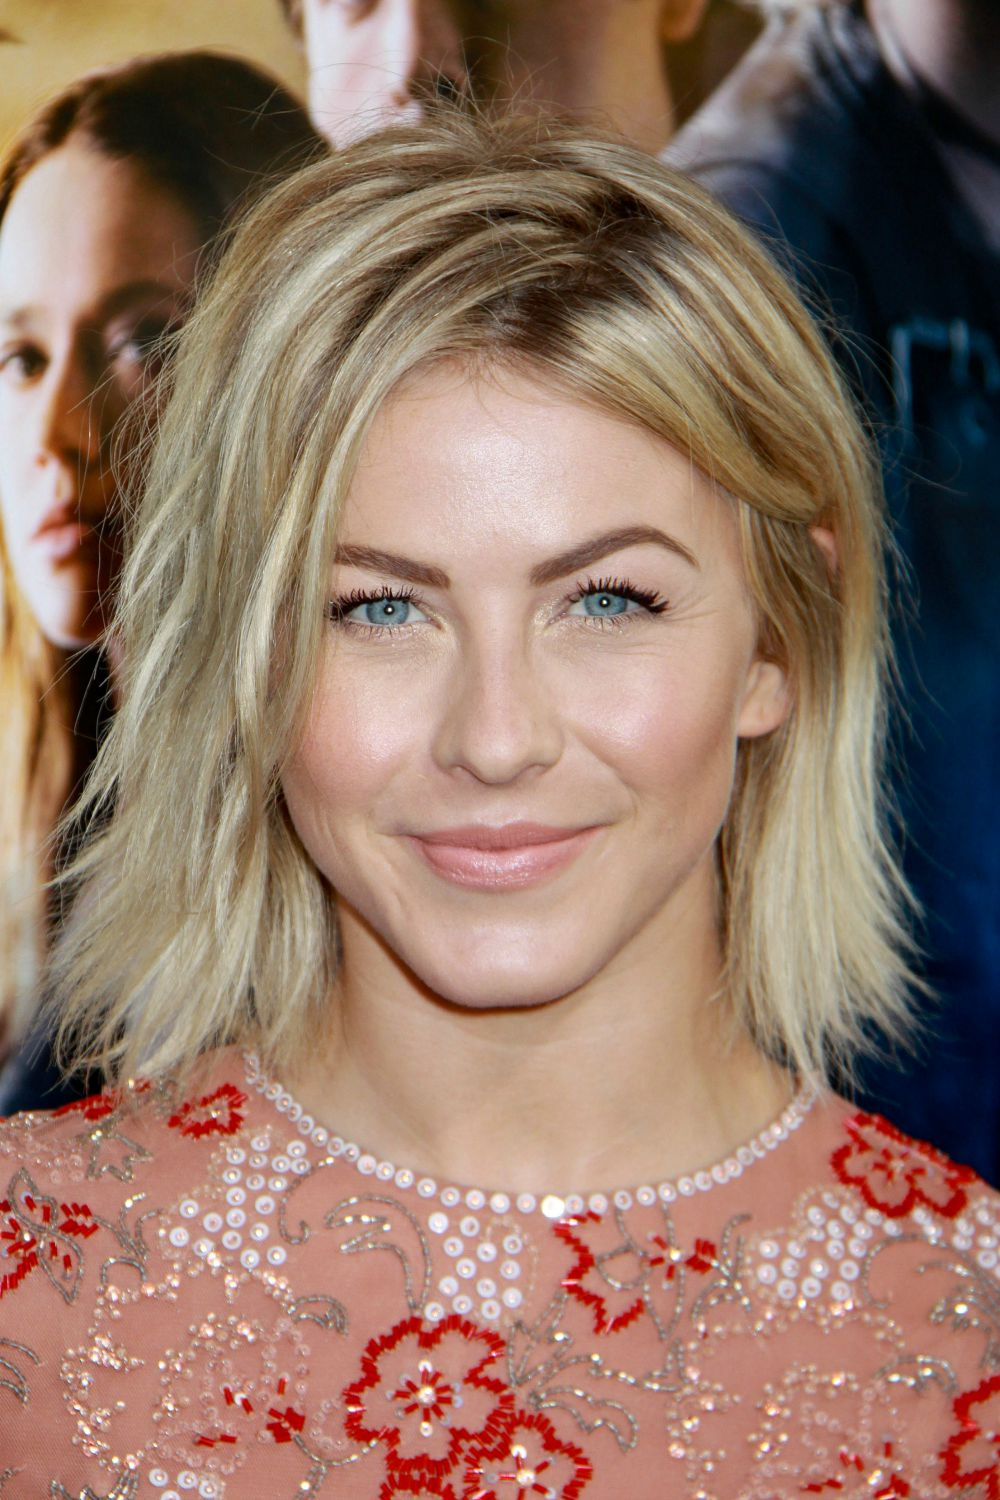 Watch 2014 Short Hairstyles for Women video